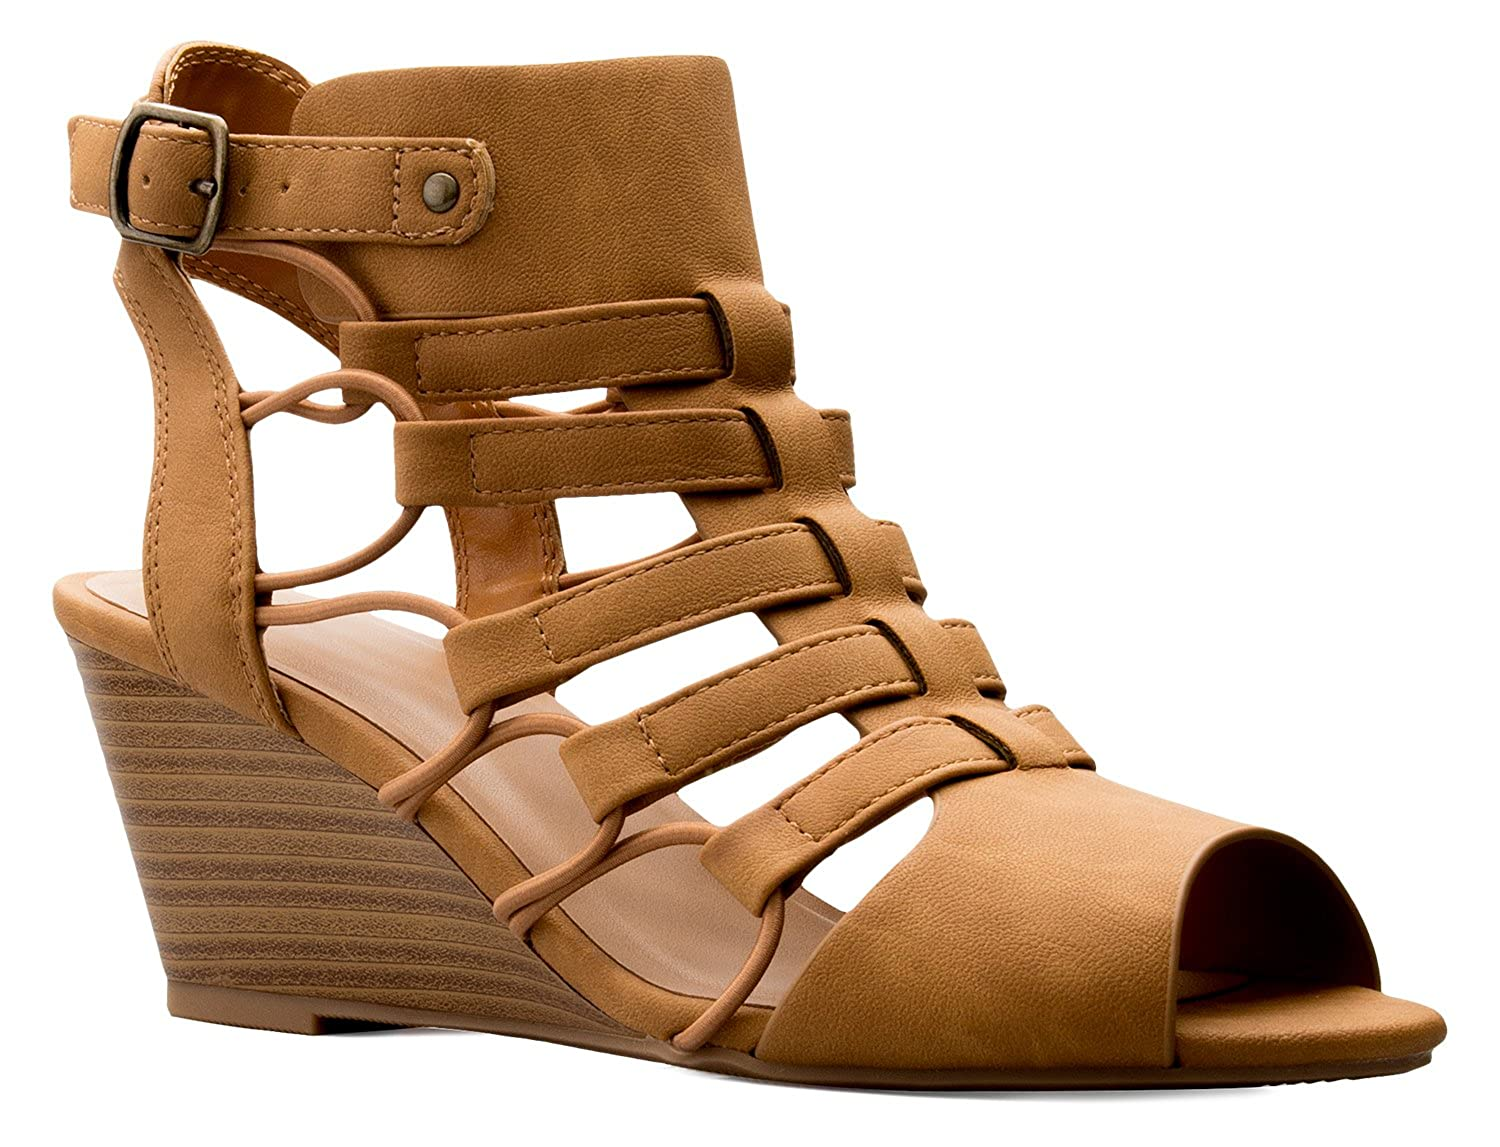 63996f6b07 Amazon.com | OLIVIA K Women's Strappy Cord Wedge Sandals - Sexy Open Toe  Heel - Comfort, Fasionable, Casual Style Tan | Platforms & Wedges